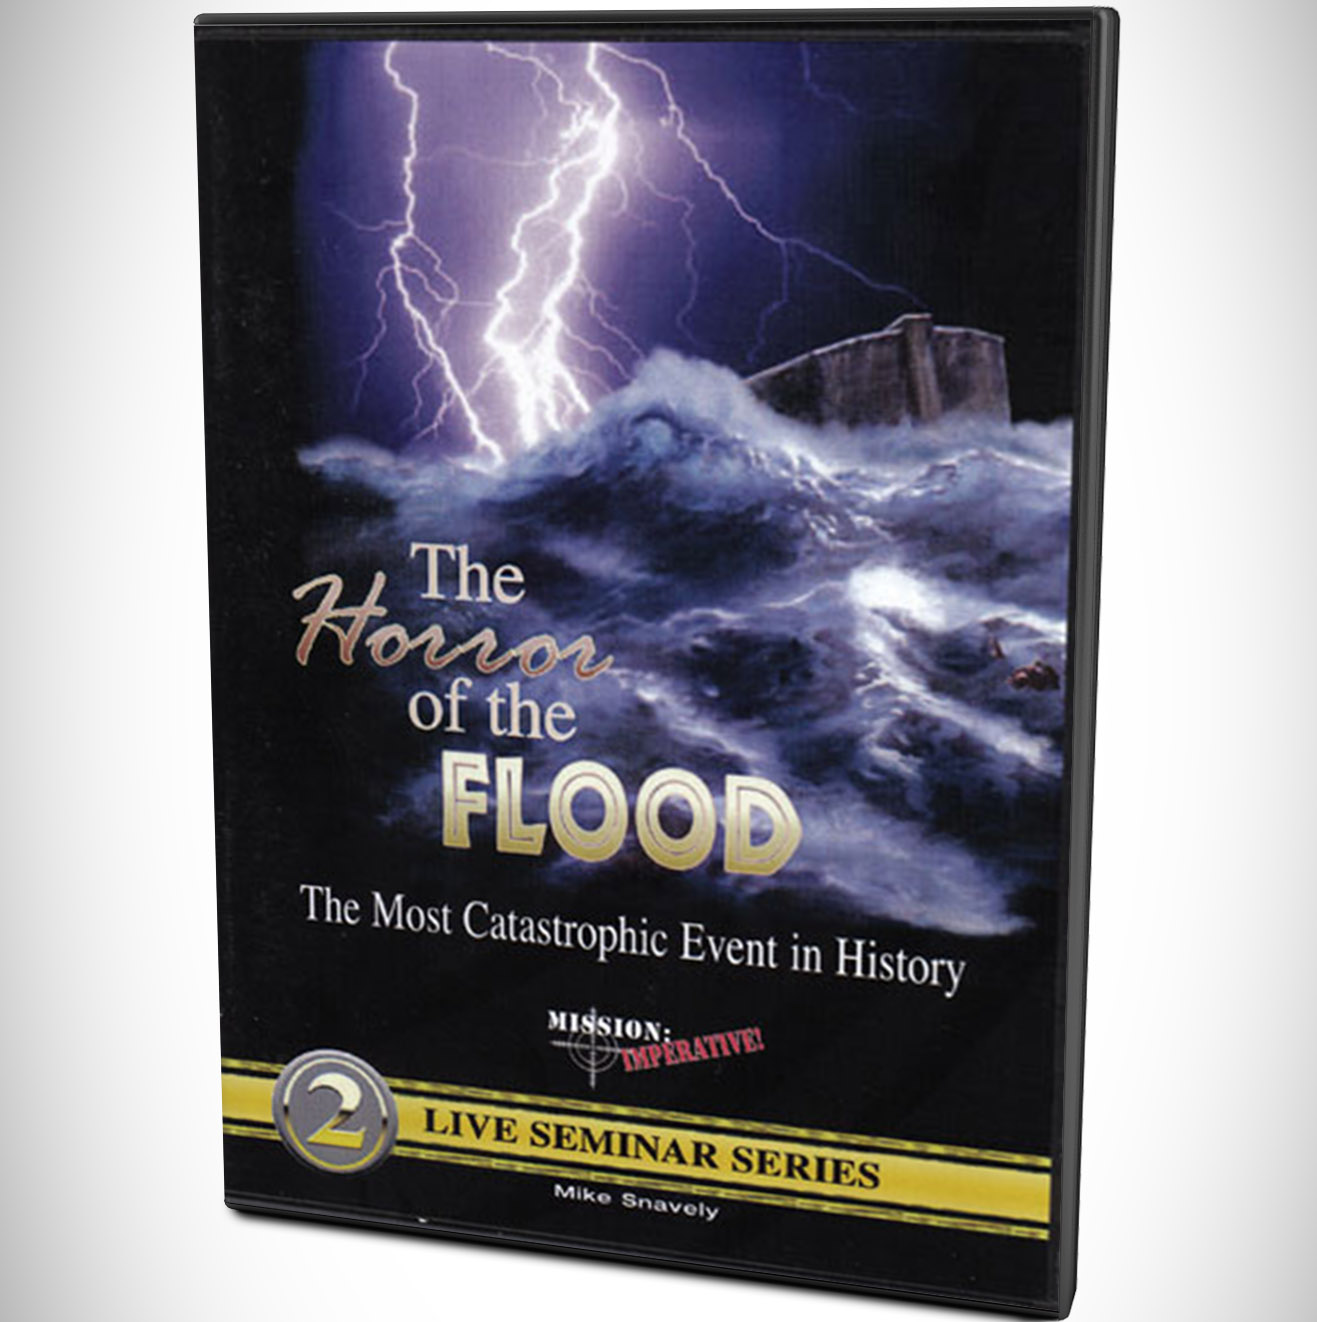 The Horror of the Flood DVD